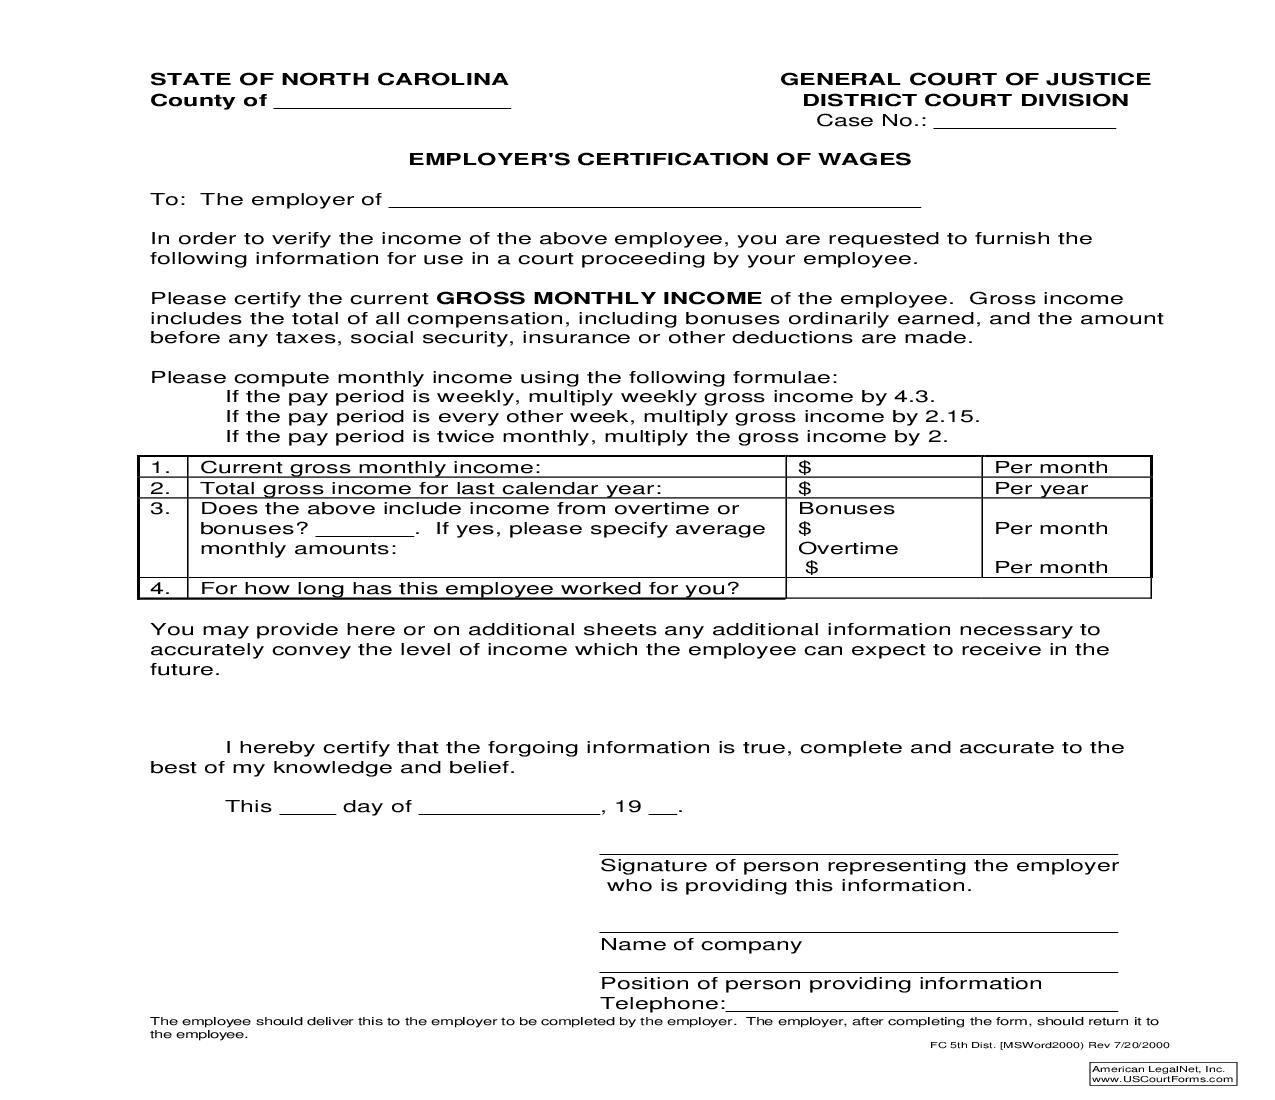 Employers Certification Of Wages {2} | Pdf Fpdf Doc Docx | North Carolina